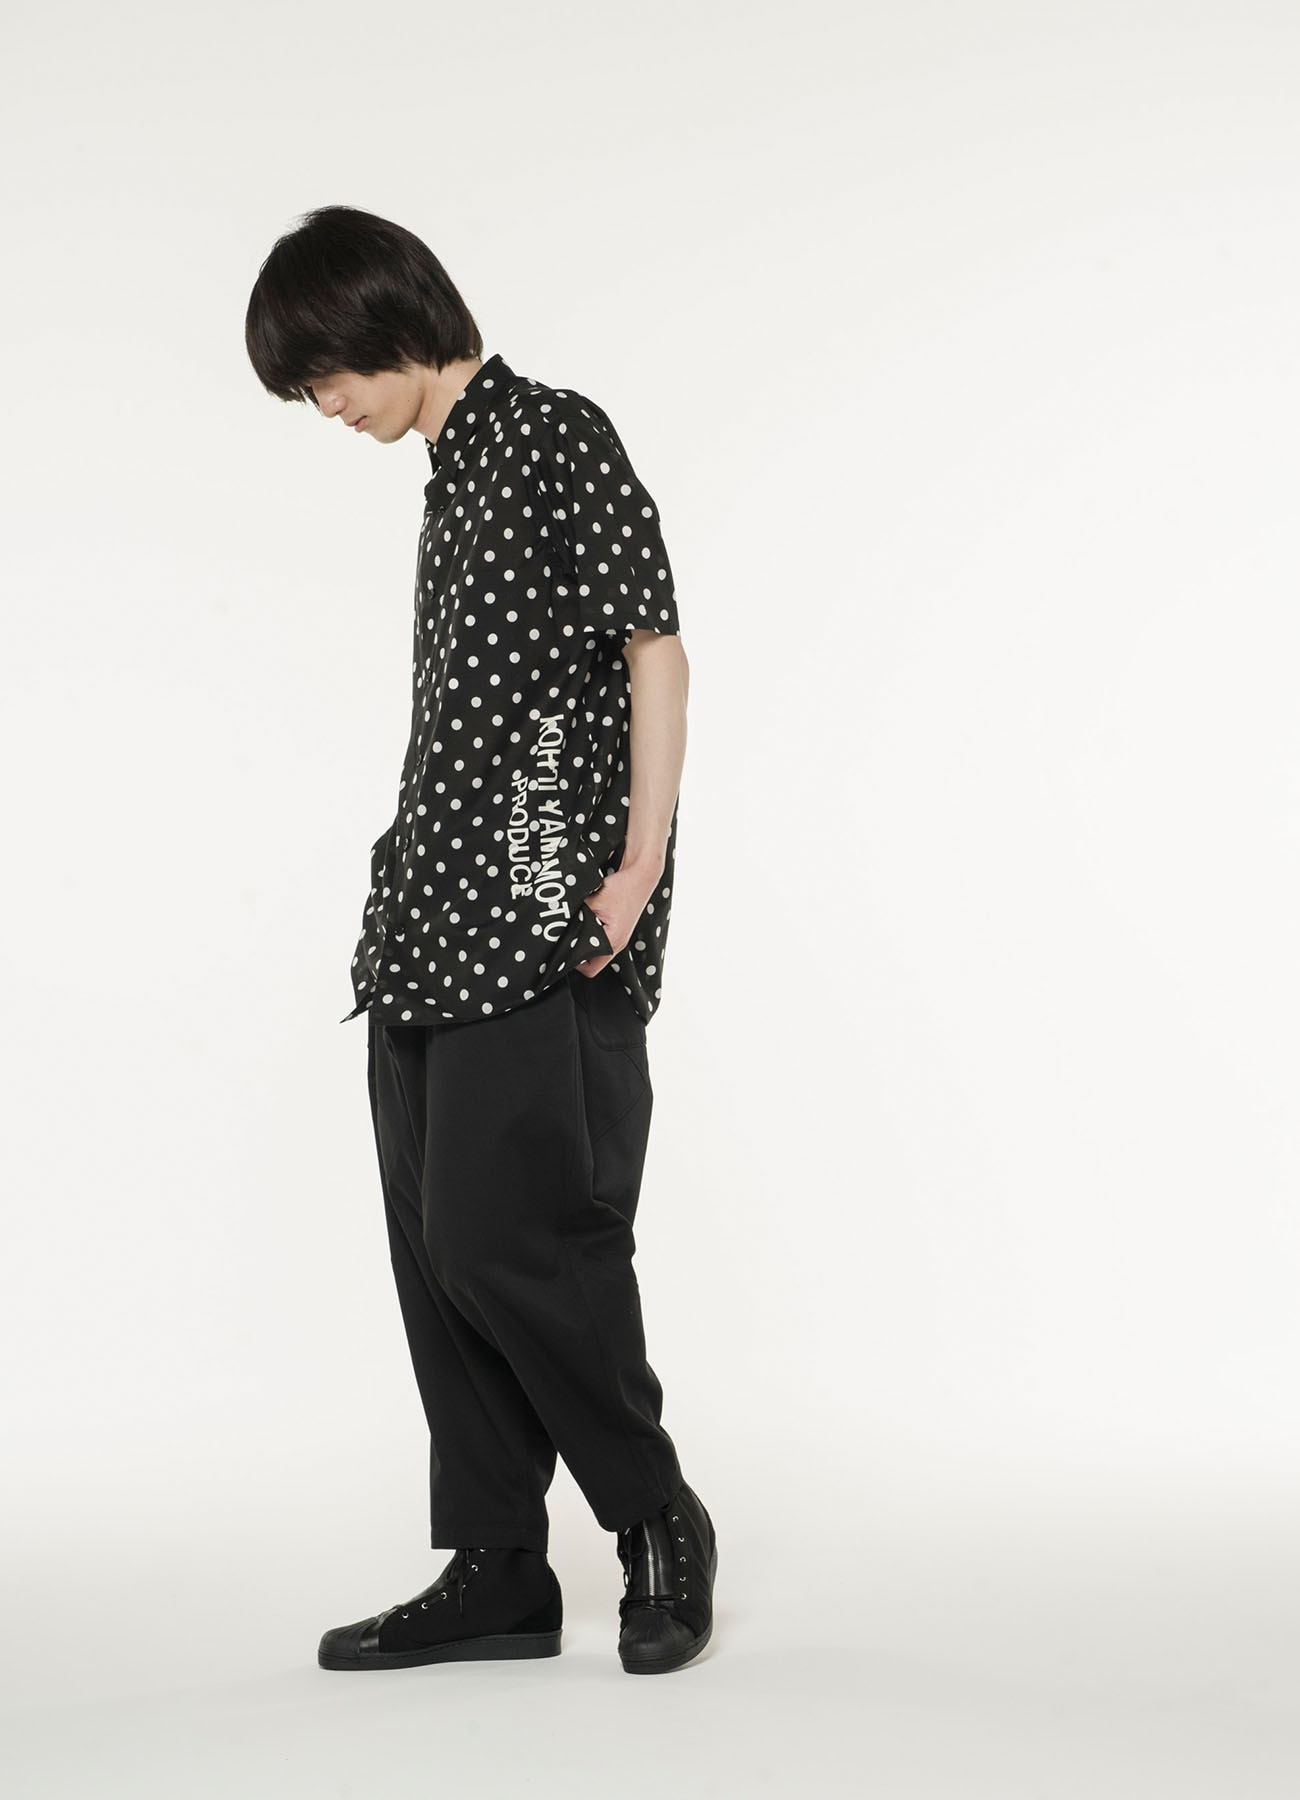 【THE SHOP限定】水玉半袖シャツ